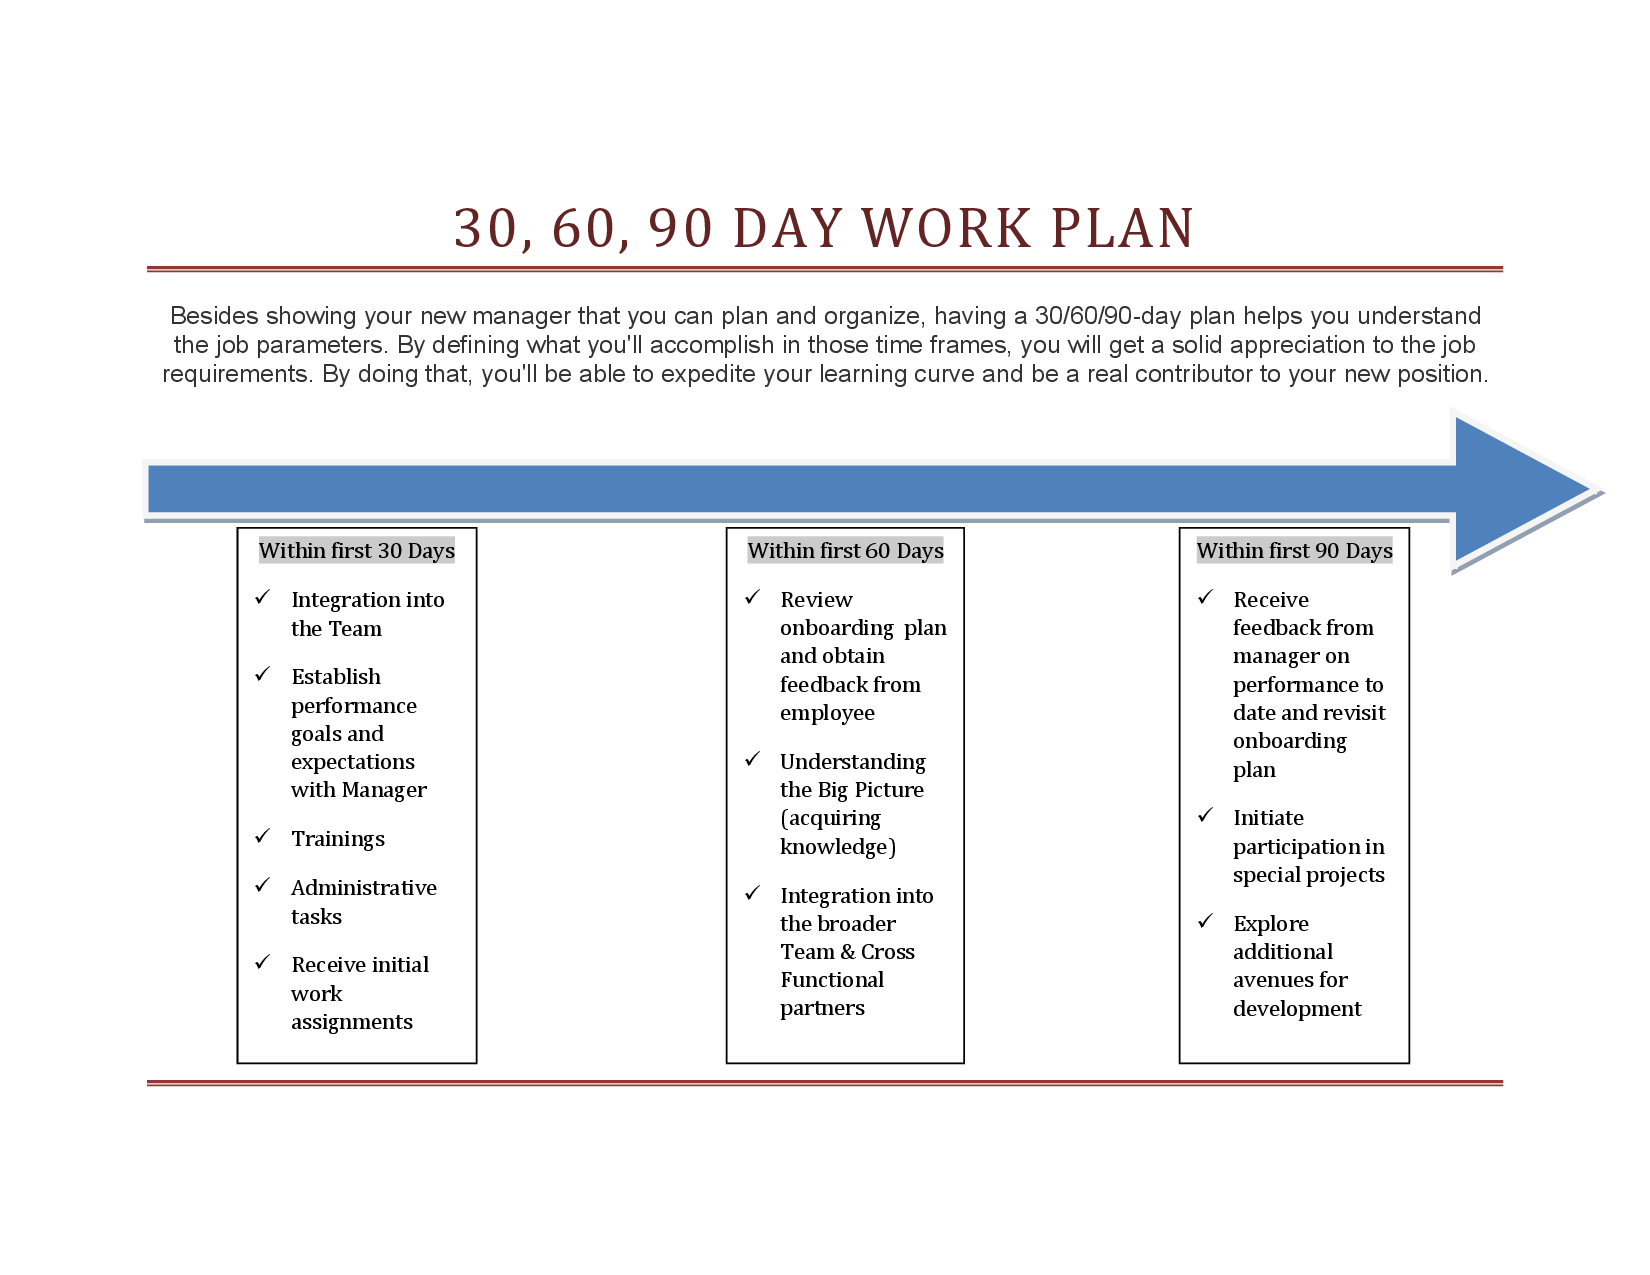 30 60 90 Day Onboarding Plan Template